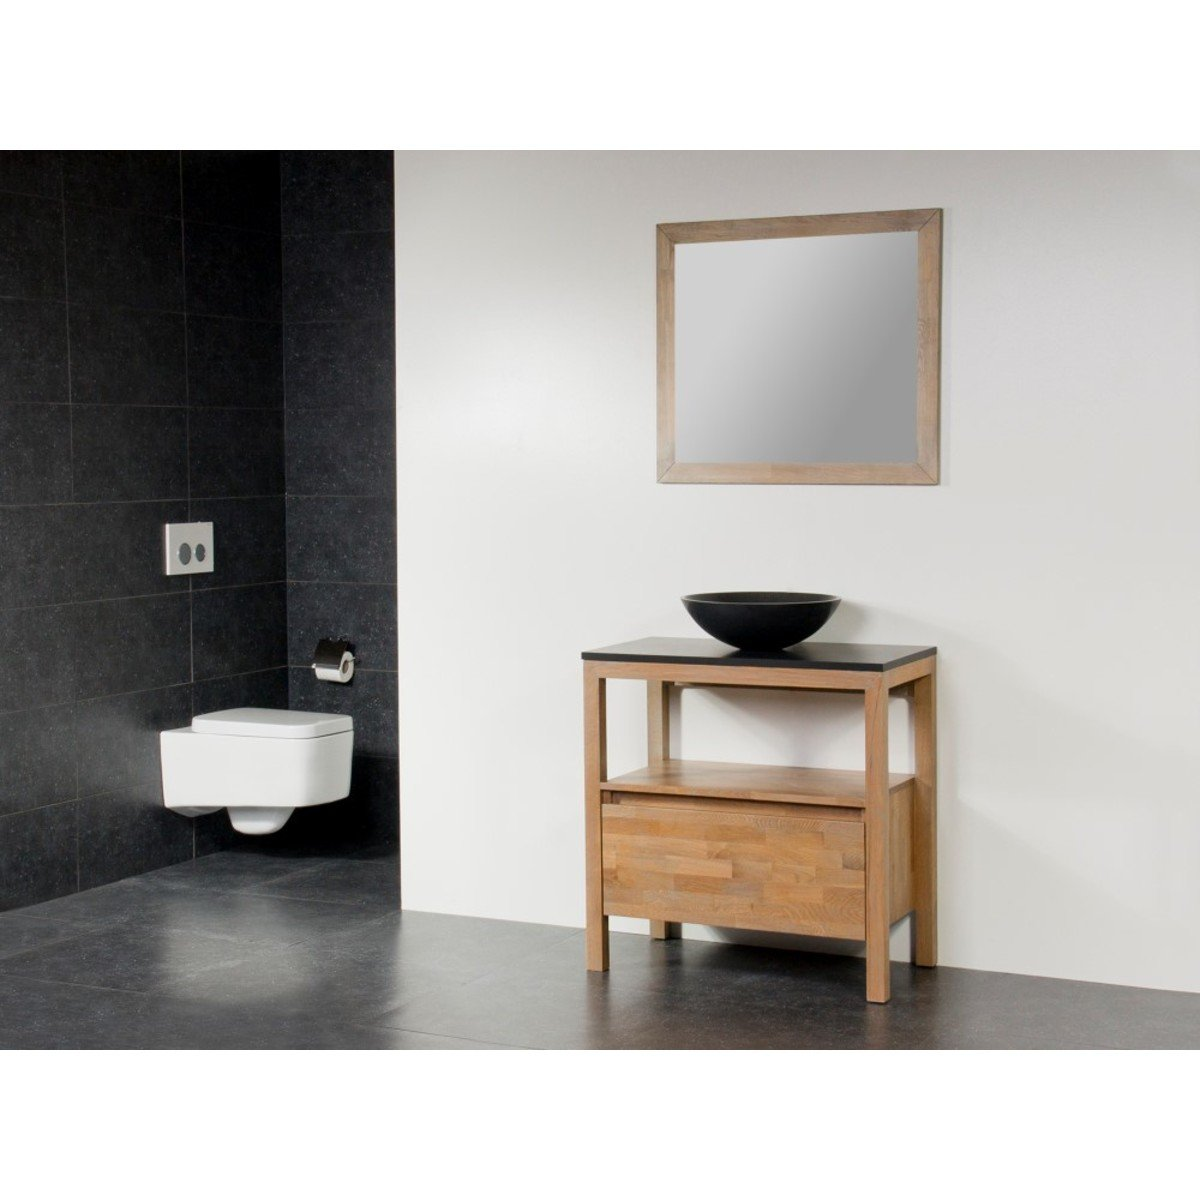 saniclass natural wood meuble salle de bain avec miroir 80cm grey oak avec vasque poser noir. Black Bedroom Furniture Sets. Home Design Ideas